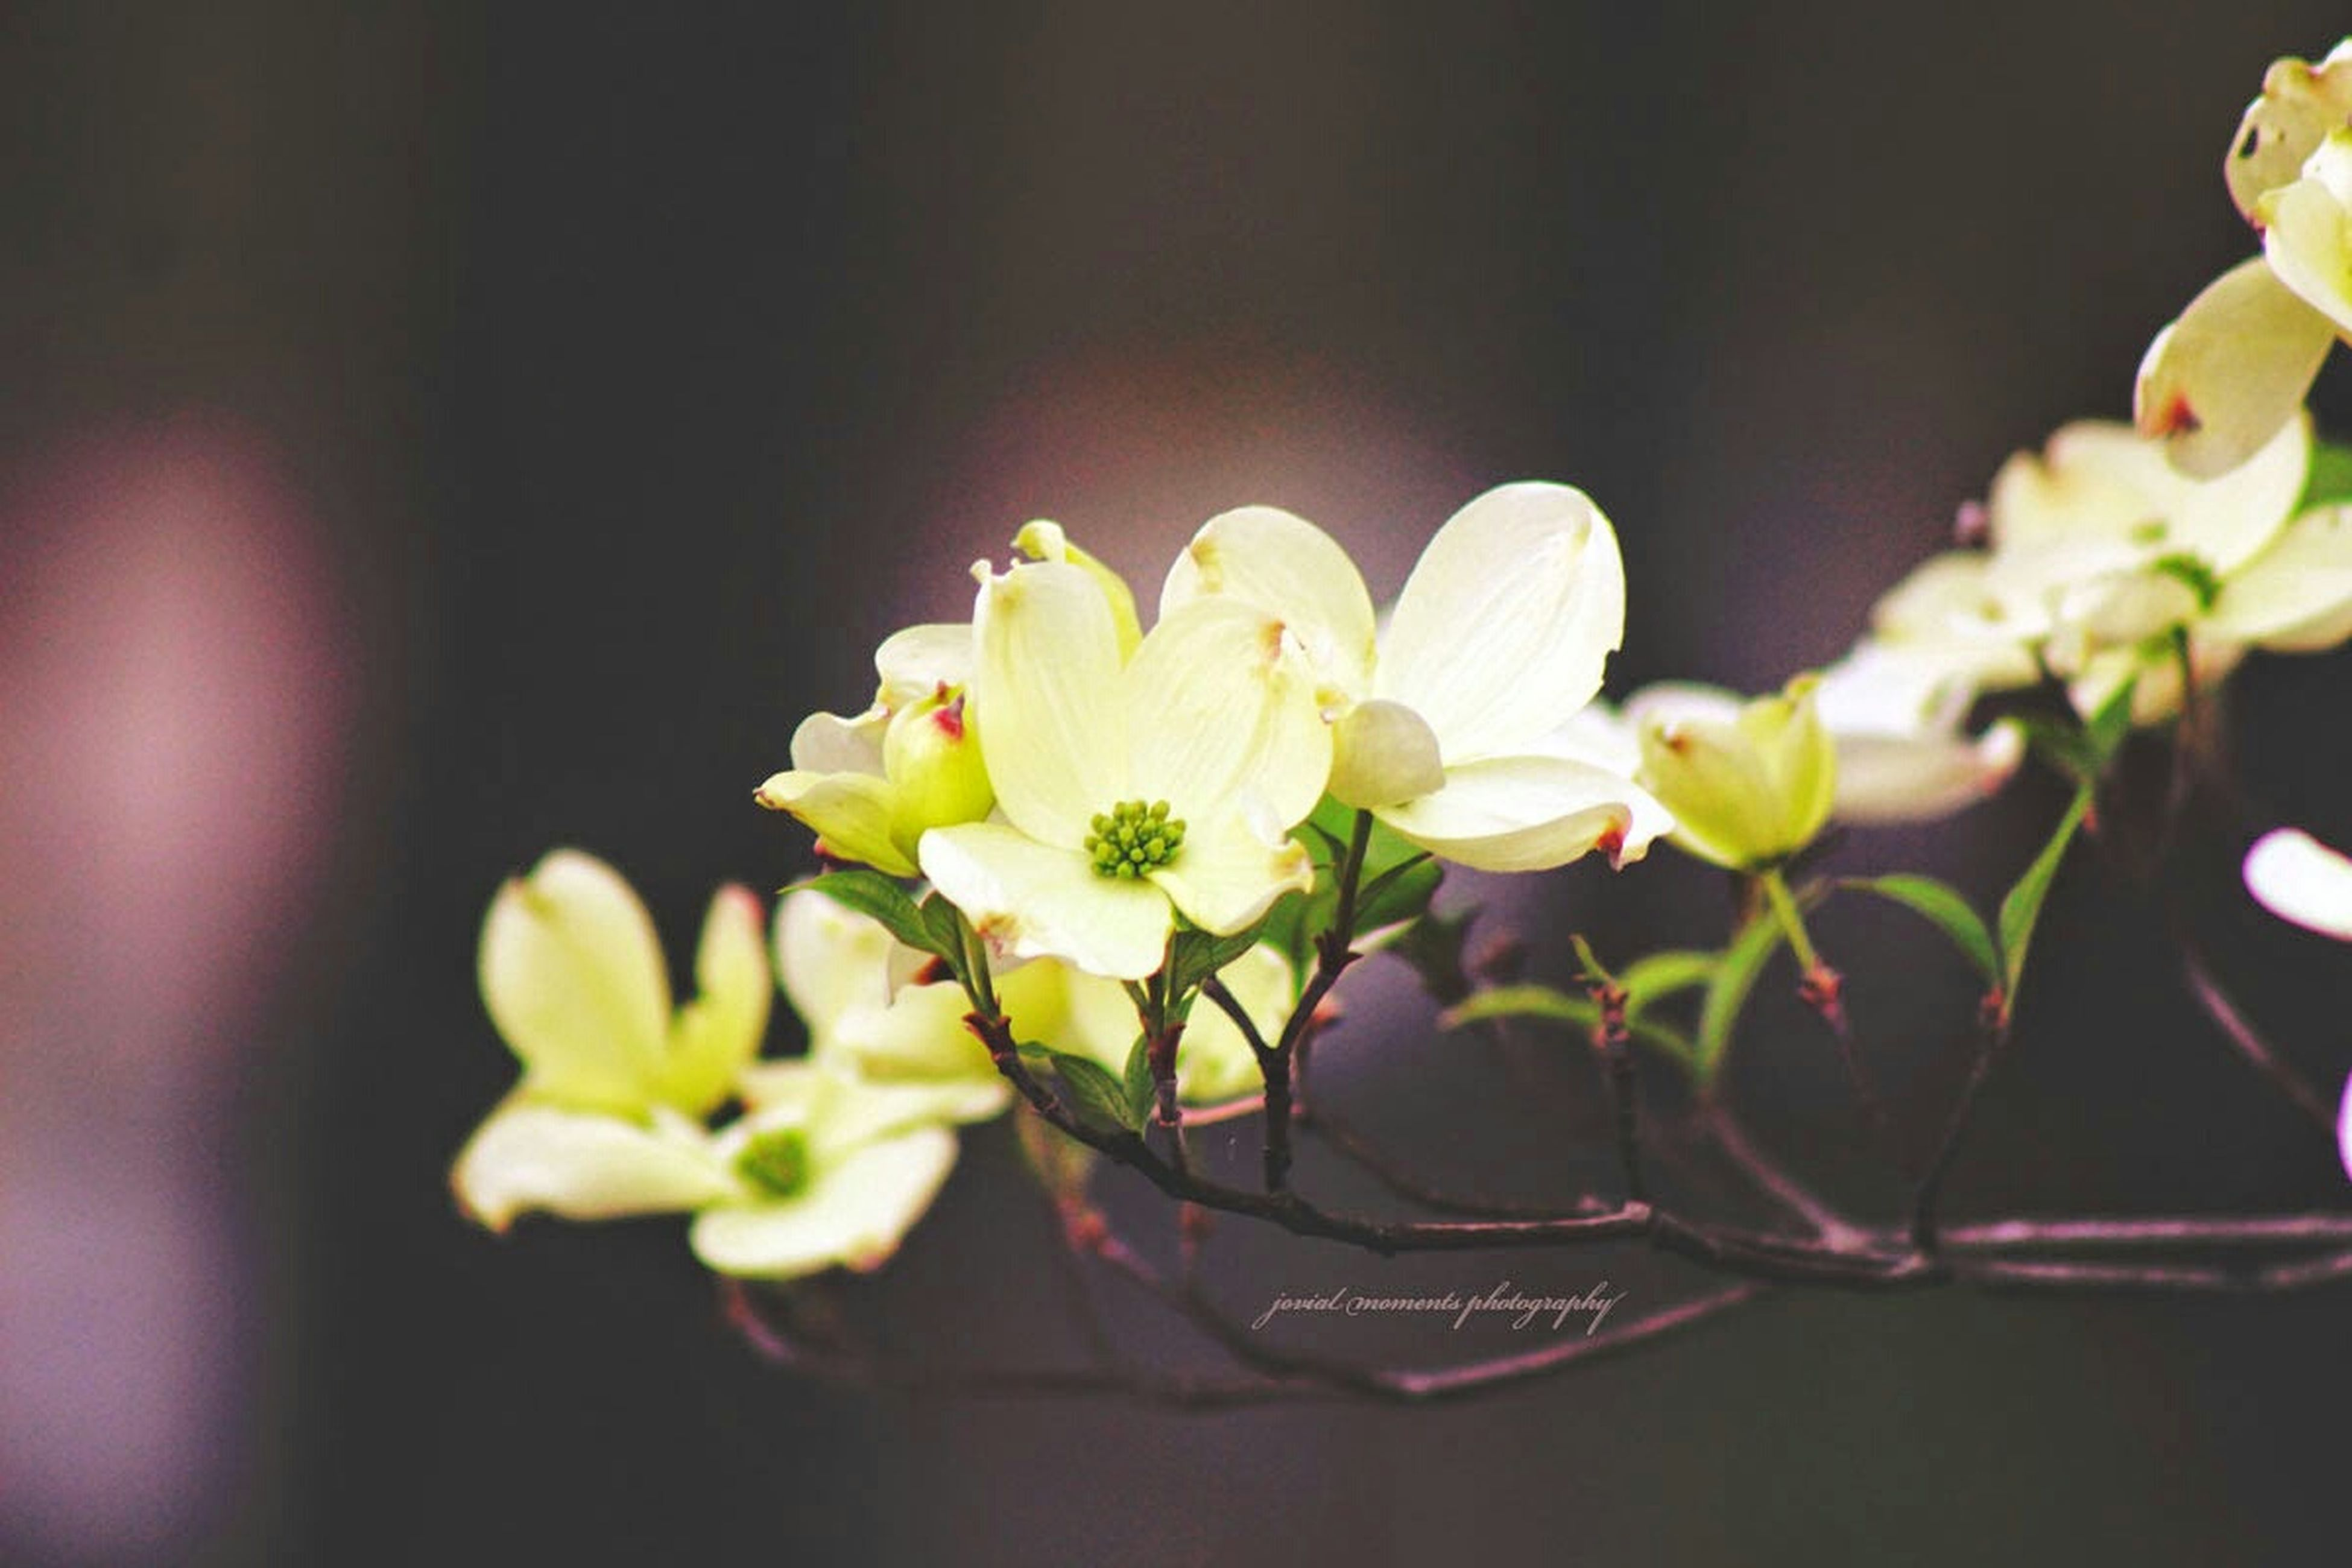 flower, petal, freshness, fragility, flower head, white color, beauty in nature, growth, close-up, focus on foreground, nature, blooming, plant, in bloom, blossom, stem, bud, selective focus, botany, no people